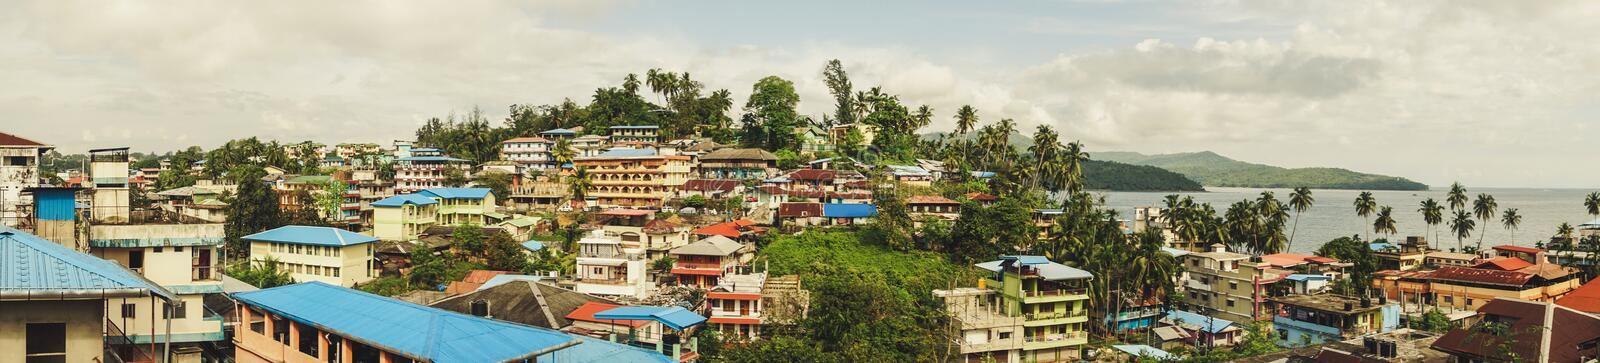 beautiful top view of the city of port Blair royalty free stock photography